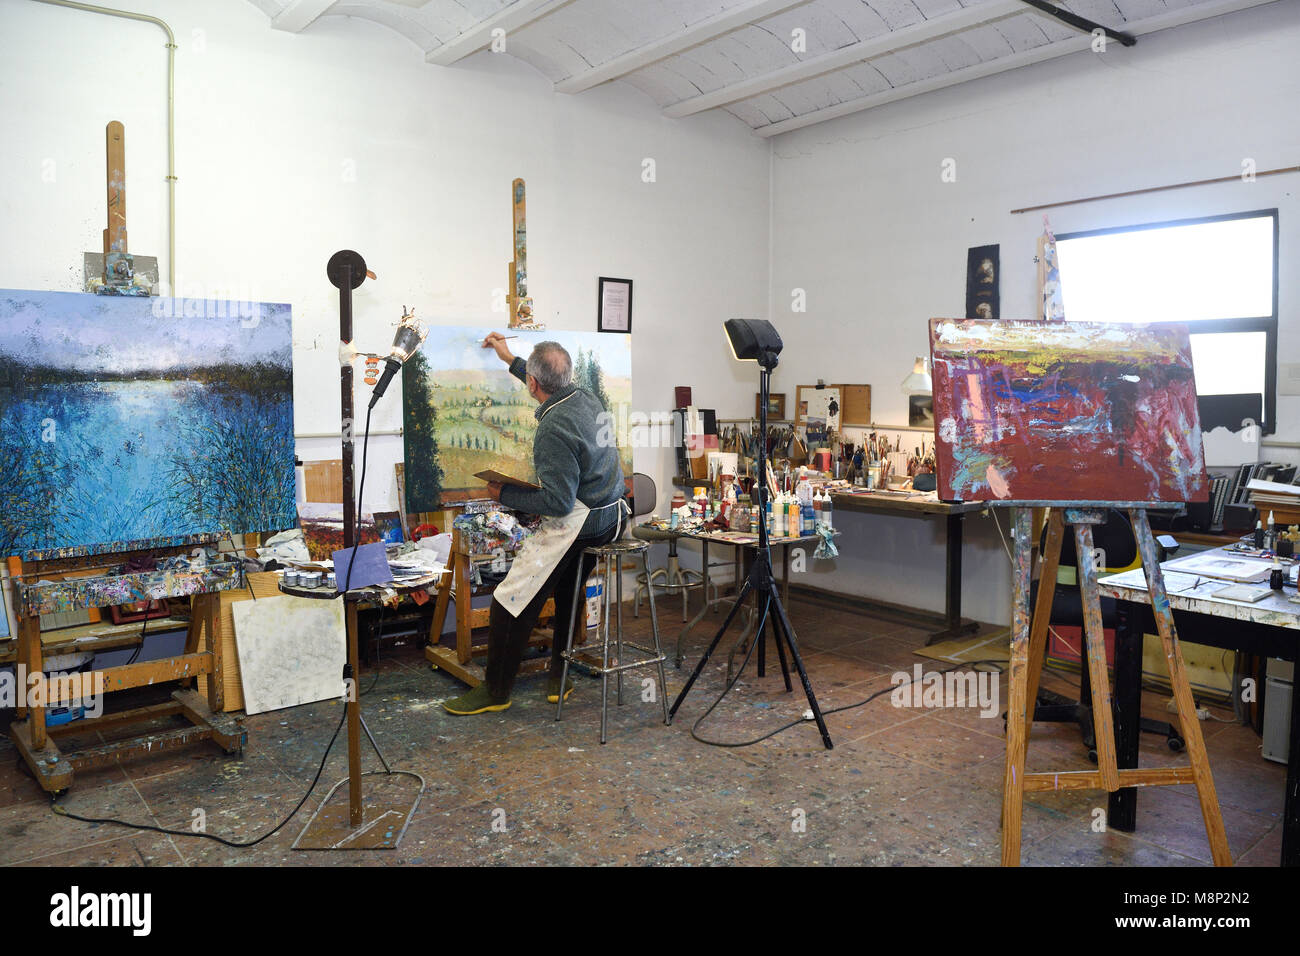 Painter artist painting a picture in the studio Stock Photo